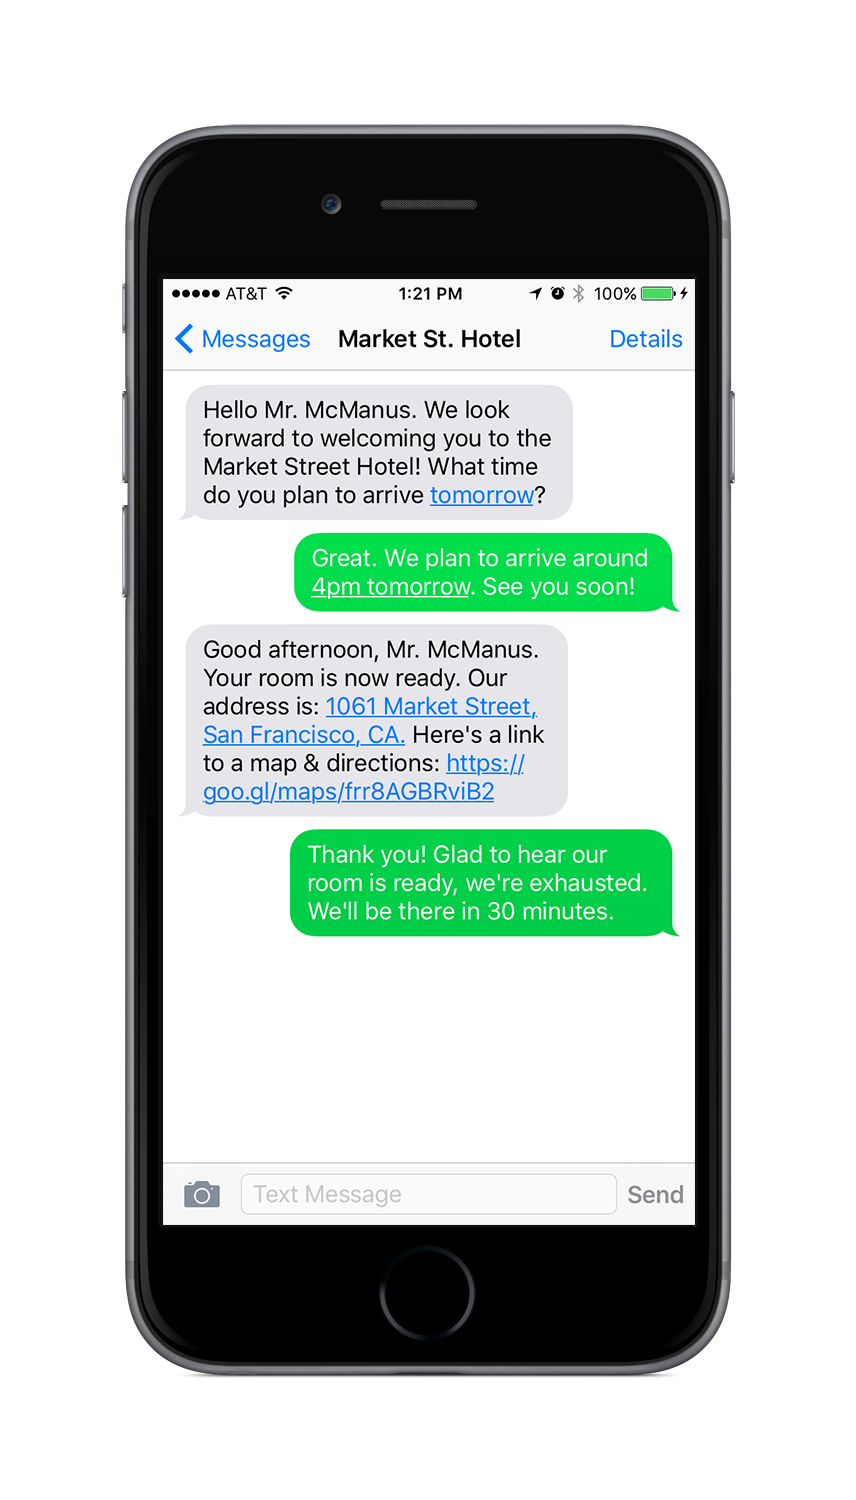 Best Practices for Text-Messaging with Guests